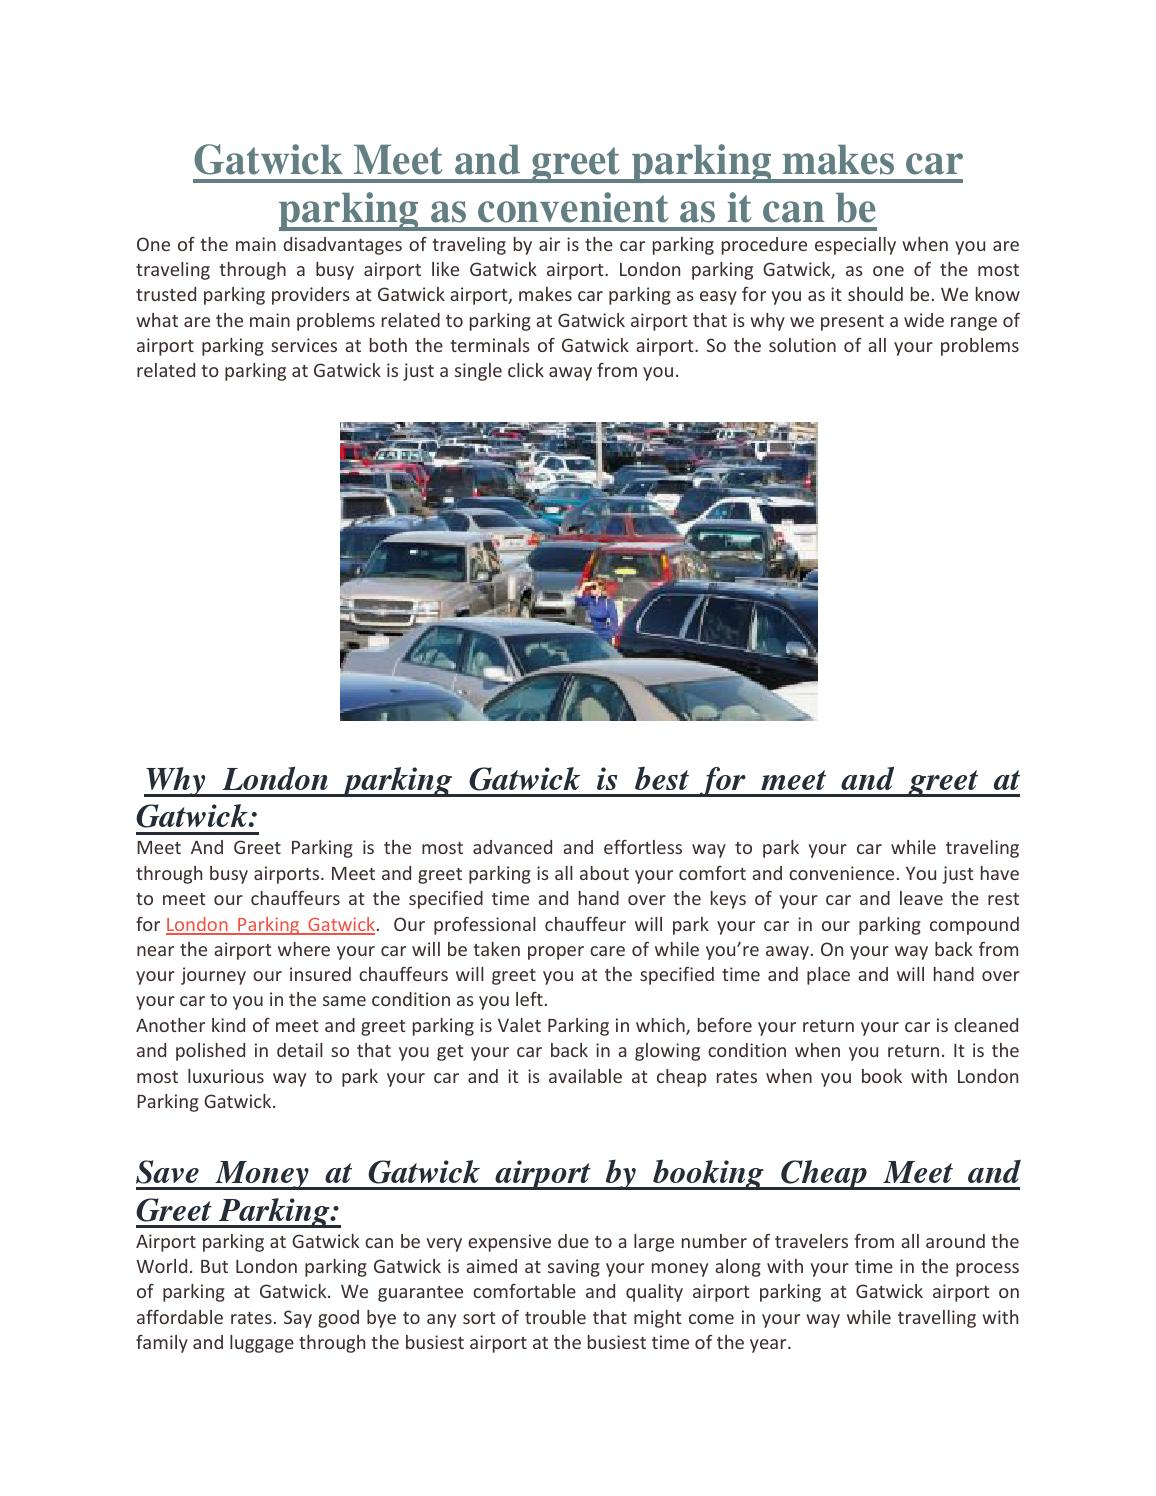 Gatwick meet and greet parking makes car parking as convenient as it gatwick meet and greet parking makes car parking as convenient as it can be by david warner issuu kristyandbryce Images